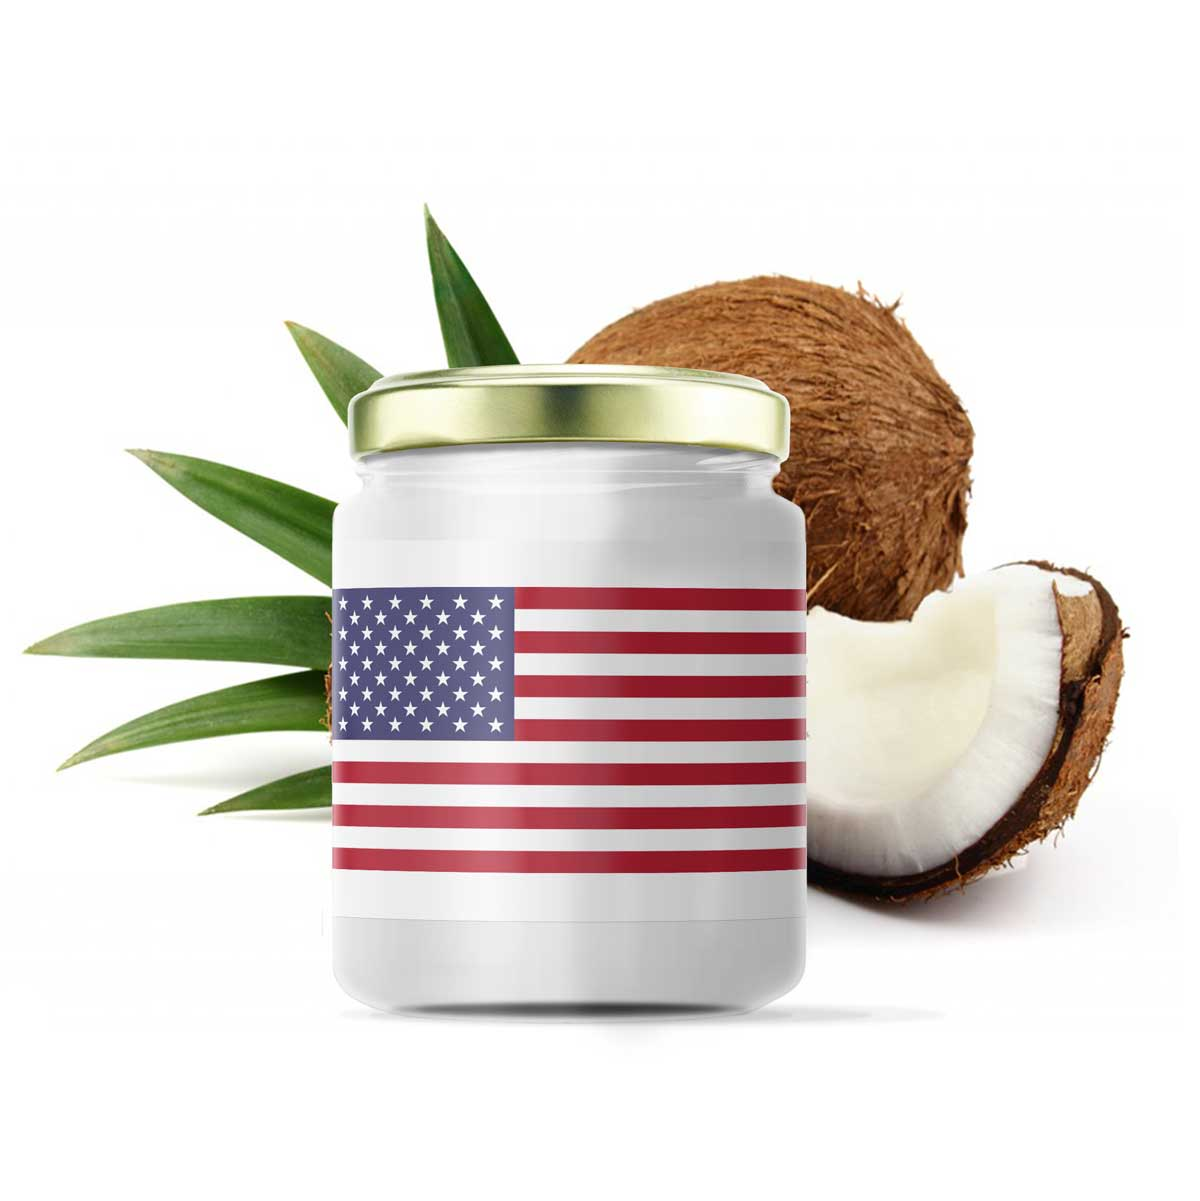 USA Coconut Products jar mockup